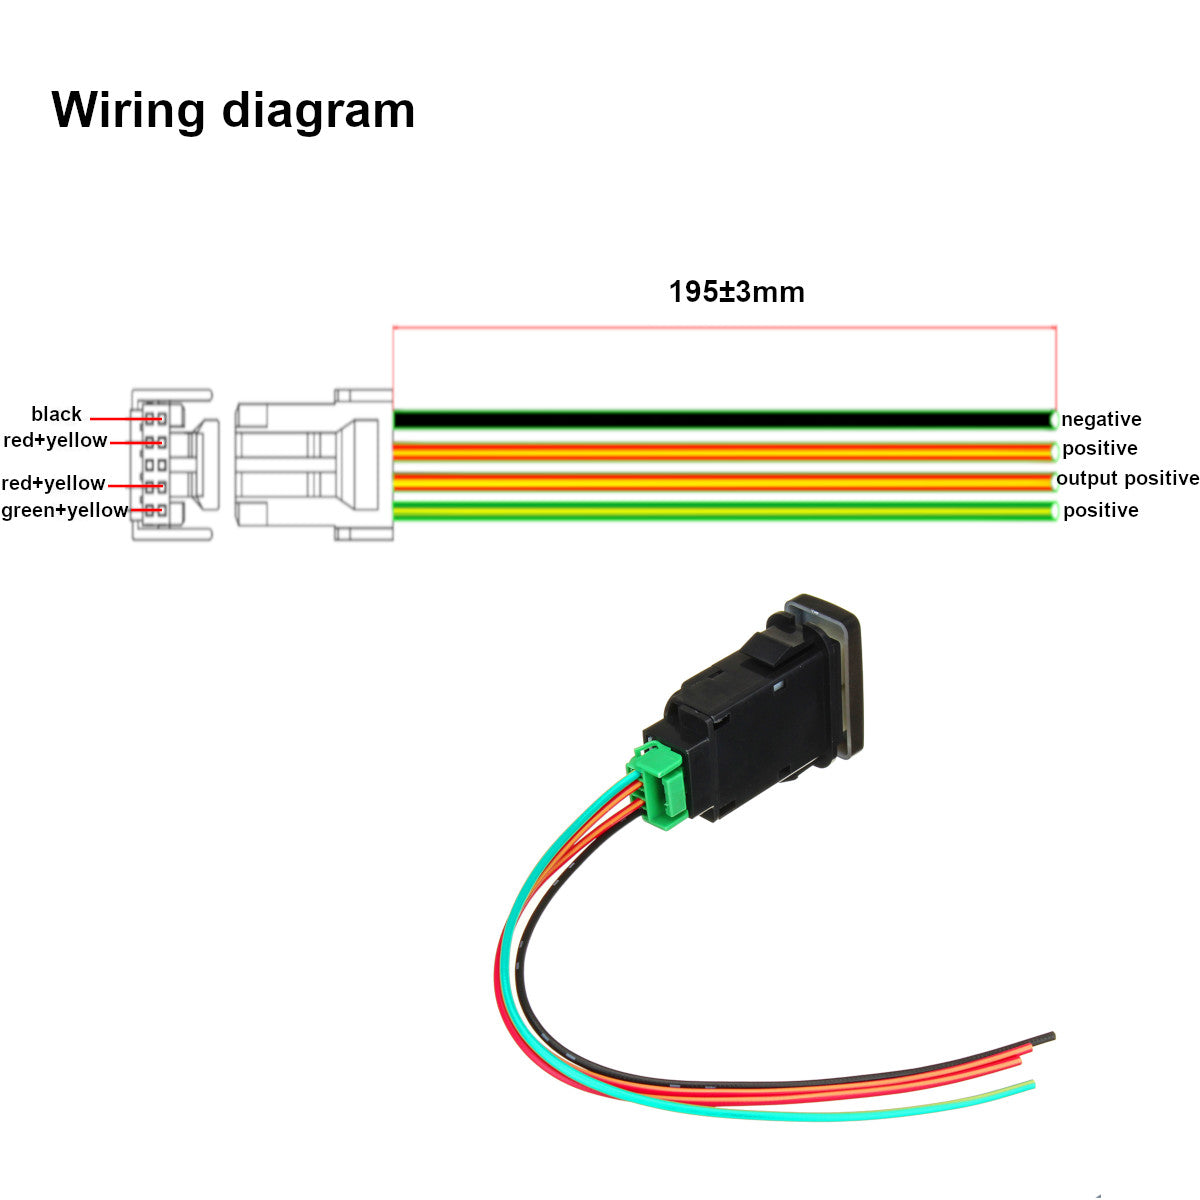 Horizontal White Led Push Switch For Toyota Hilux Hiace Fj Cruiser Auxiliary Lights Wiring Diagram Prado 79 Series Landcruiser